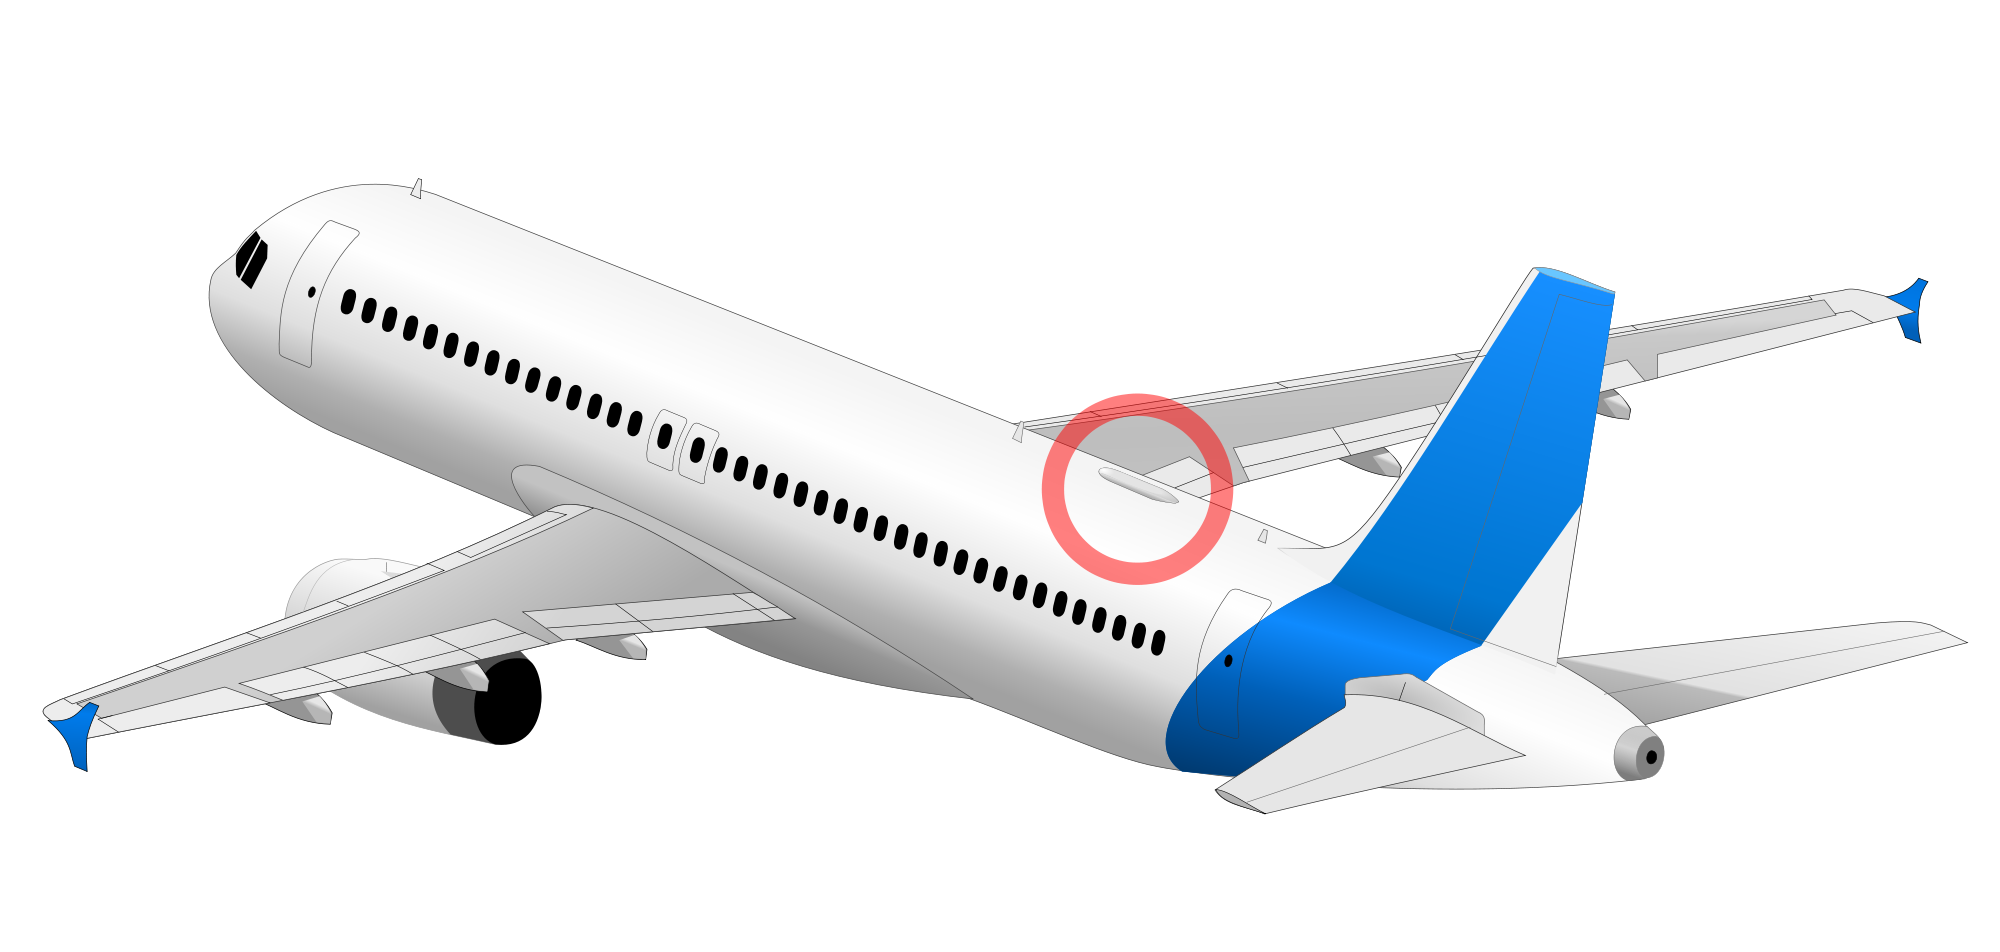 Flying clipart a380 airbus. Sitaonair wikipedia technologyedit